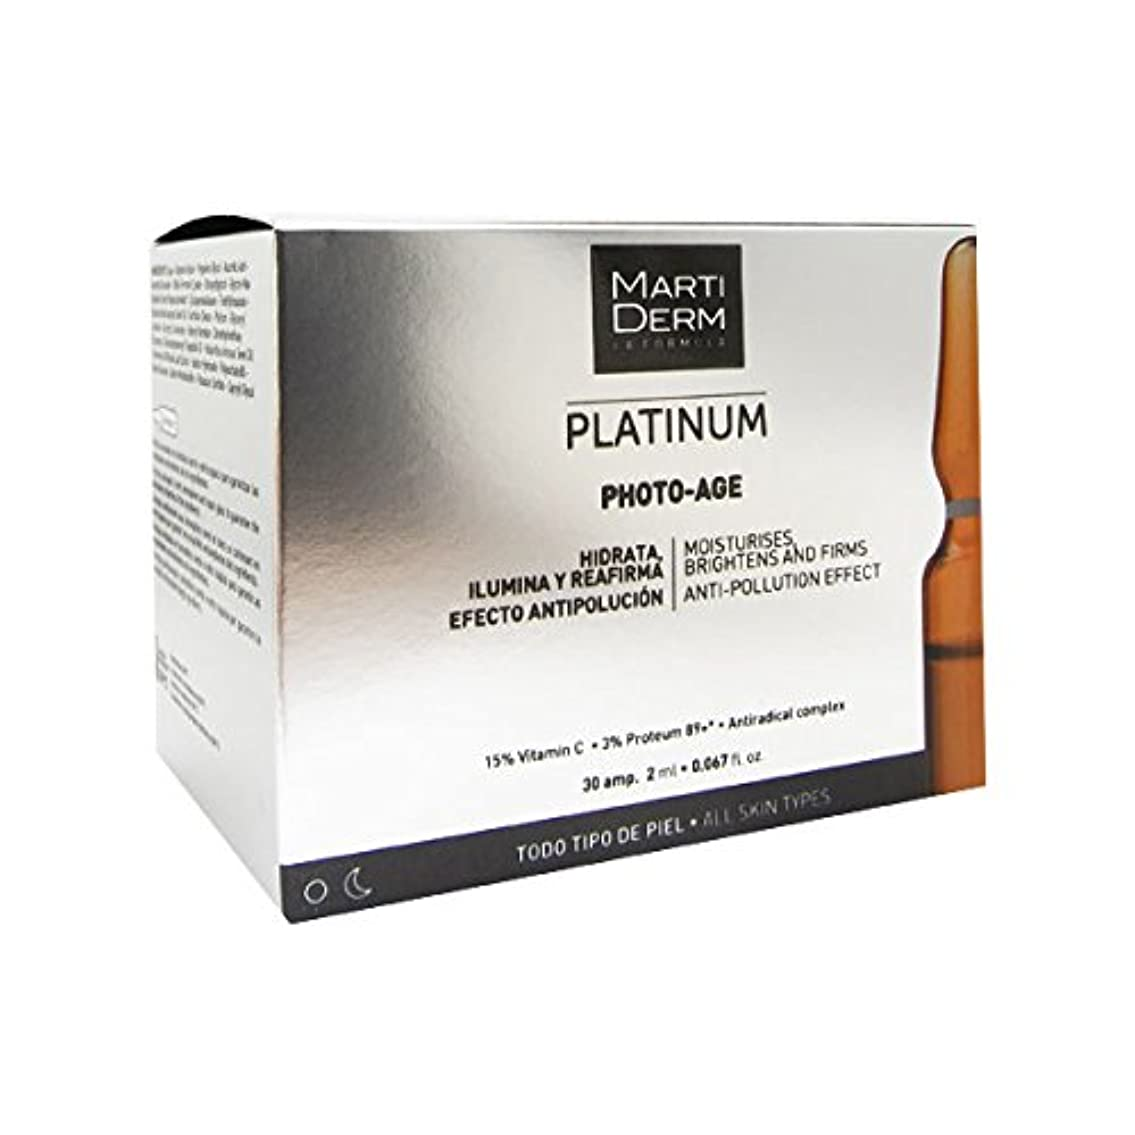 Martiderm Platinum Photo-age 30ampx2ml [並行輸入品]